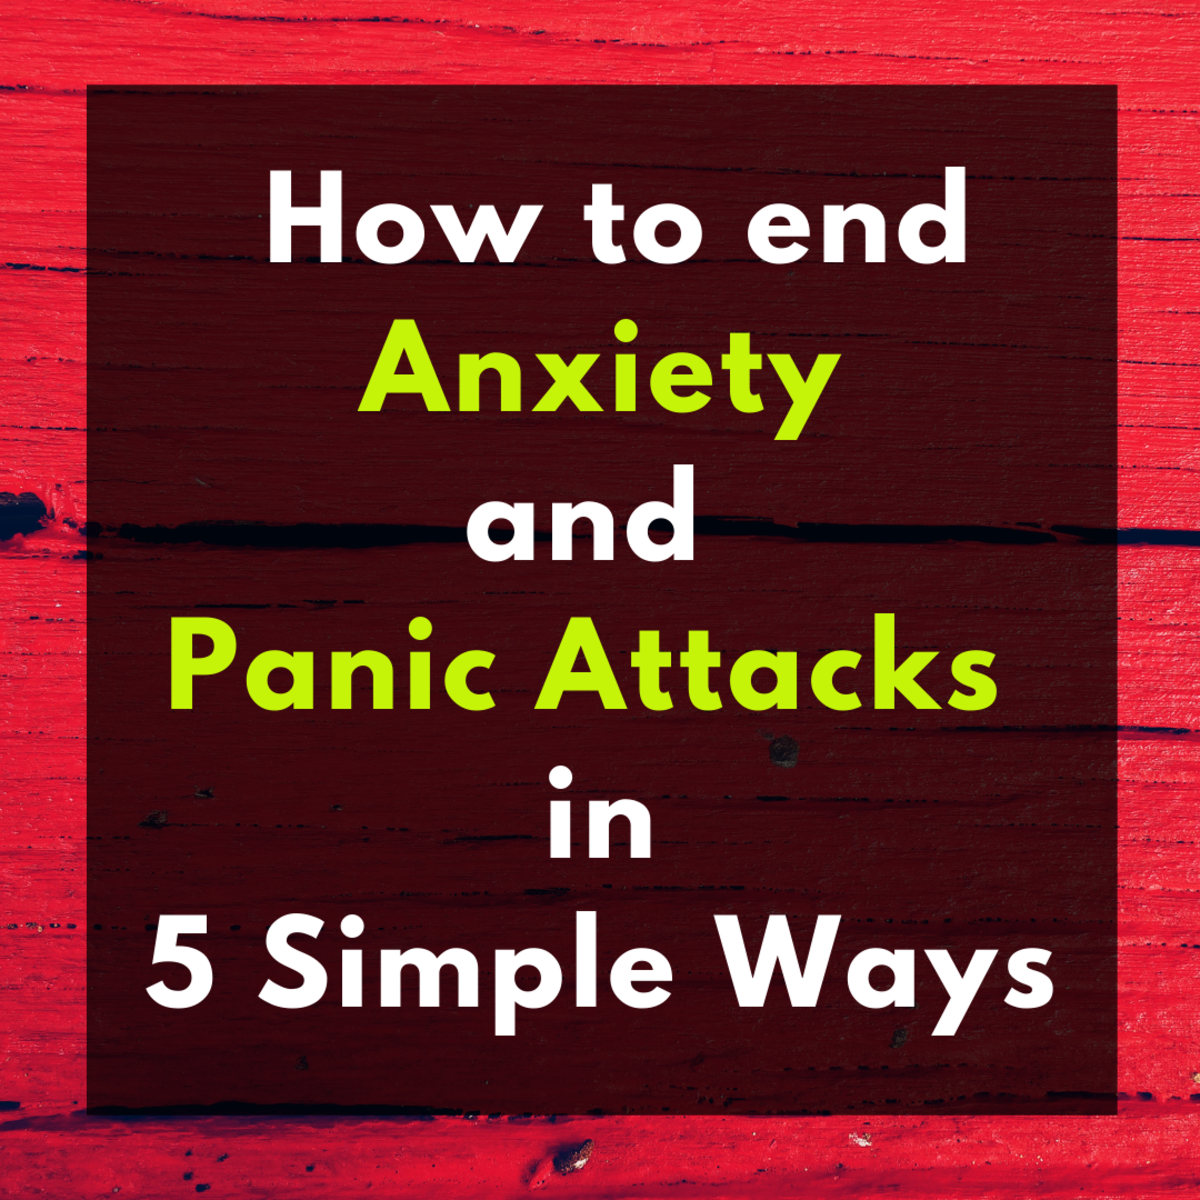 How to end anxiety and panic attacks in simple ways